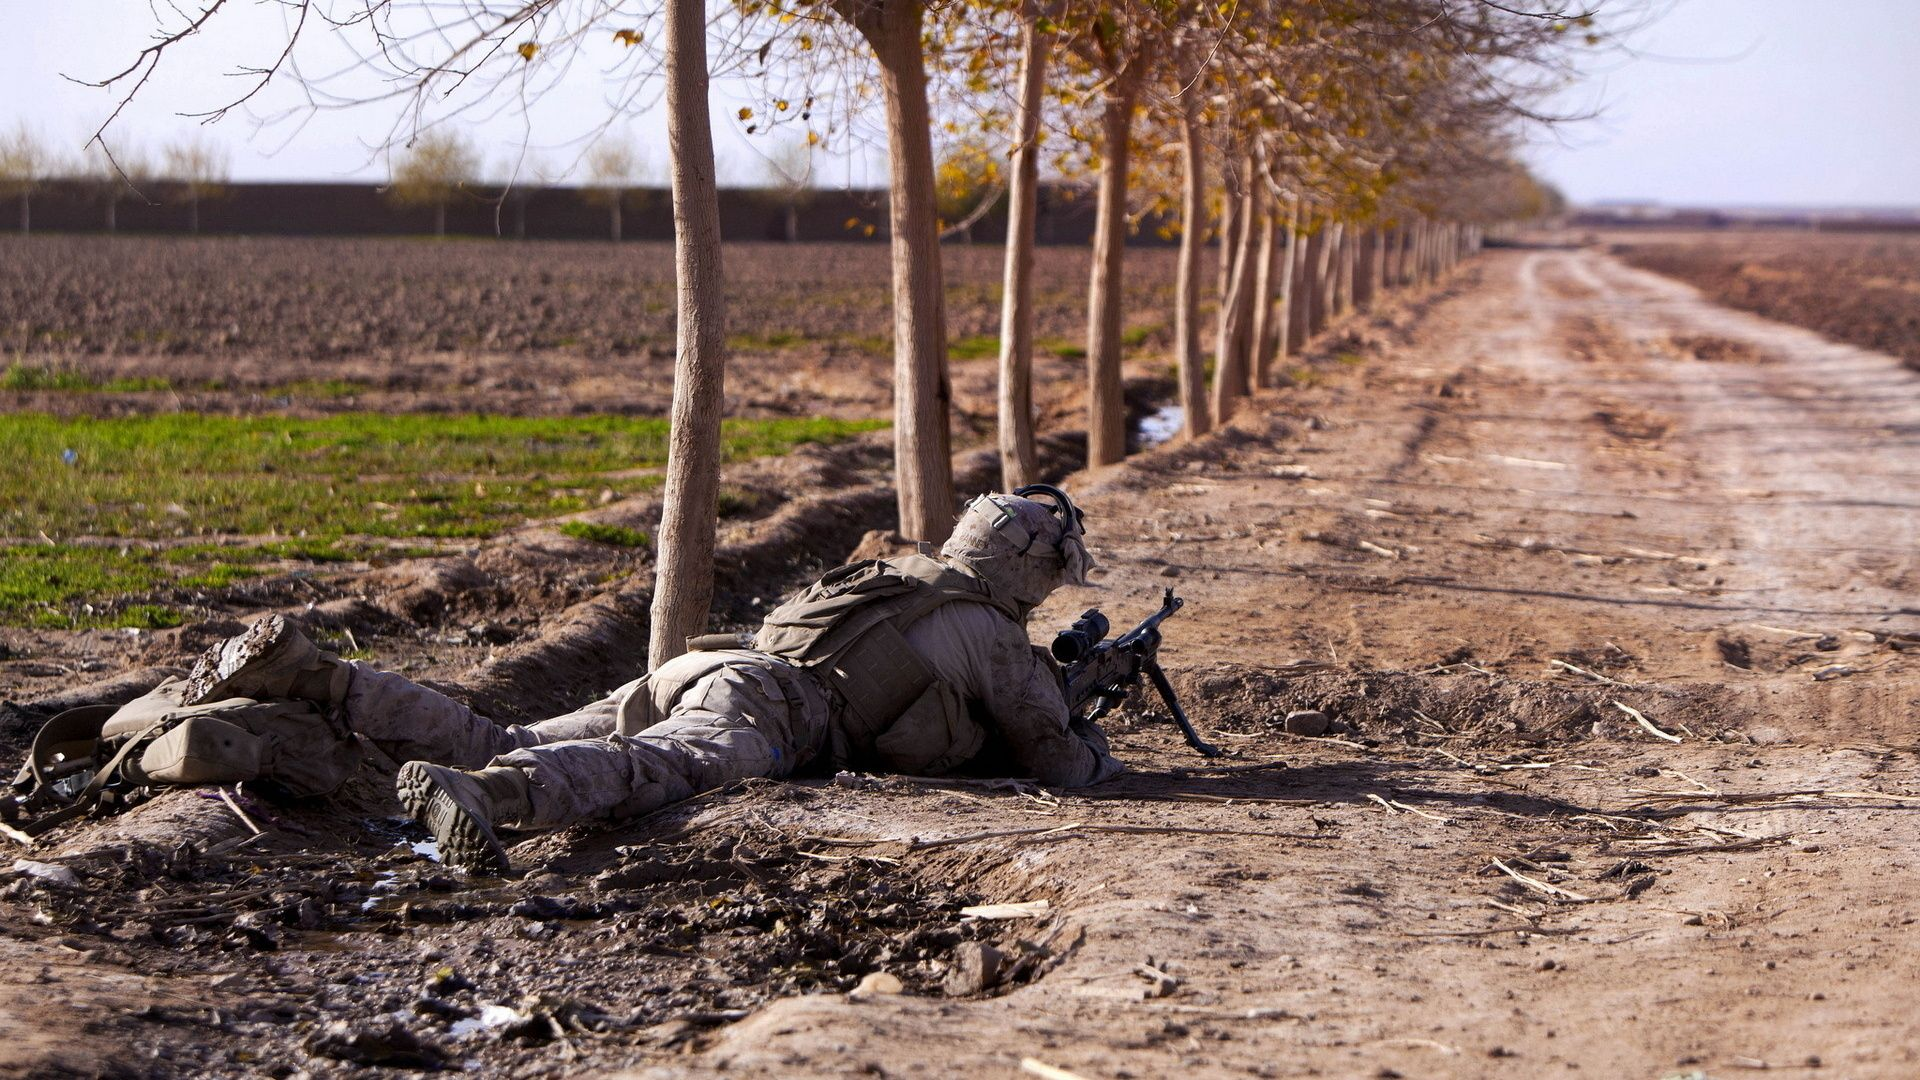 Soldiers, Weapons, United States Marine Corps